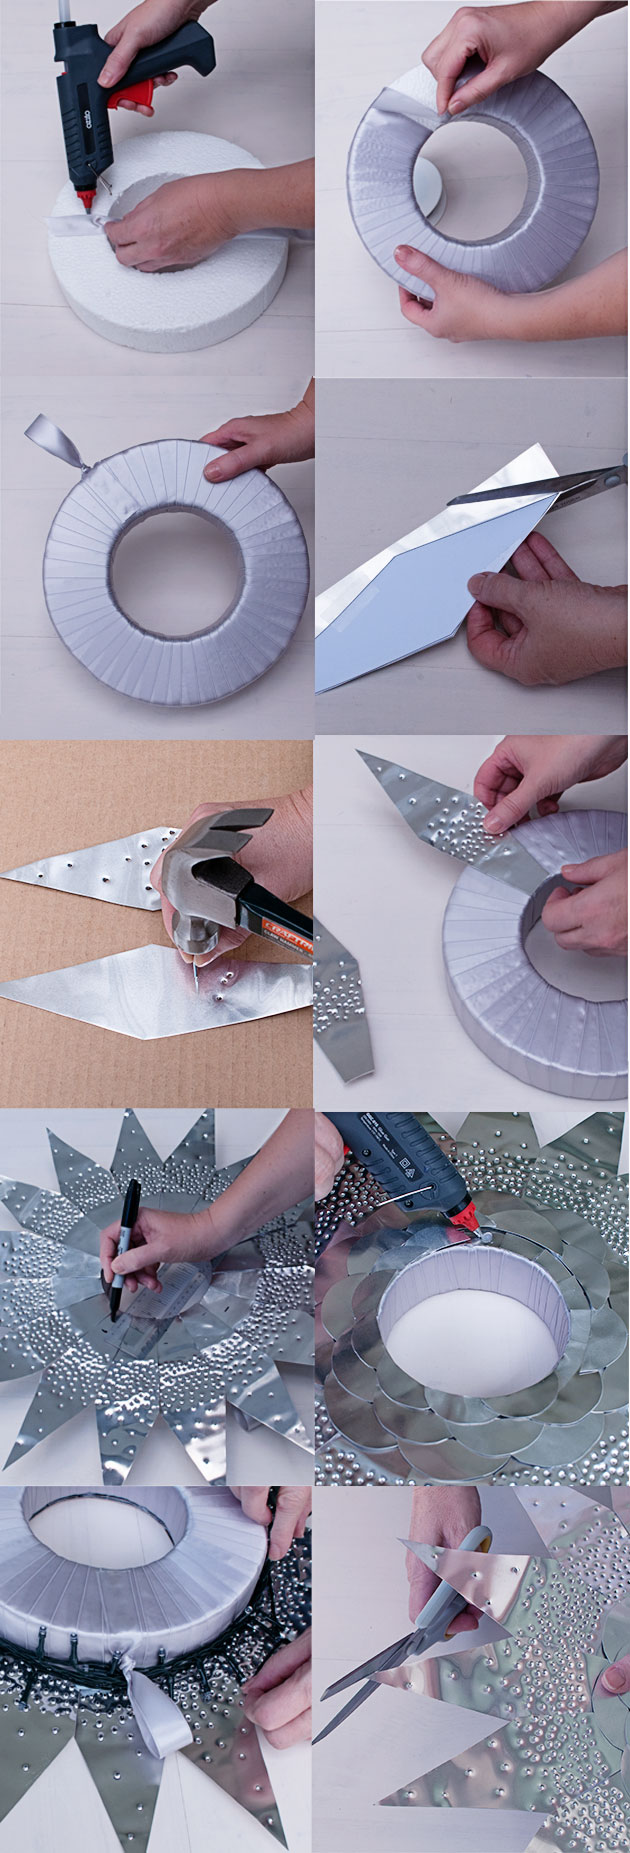 How-to-make-an-illuminated-metal-wreath-2